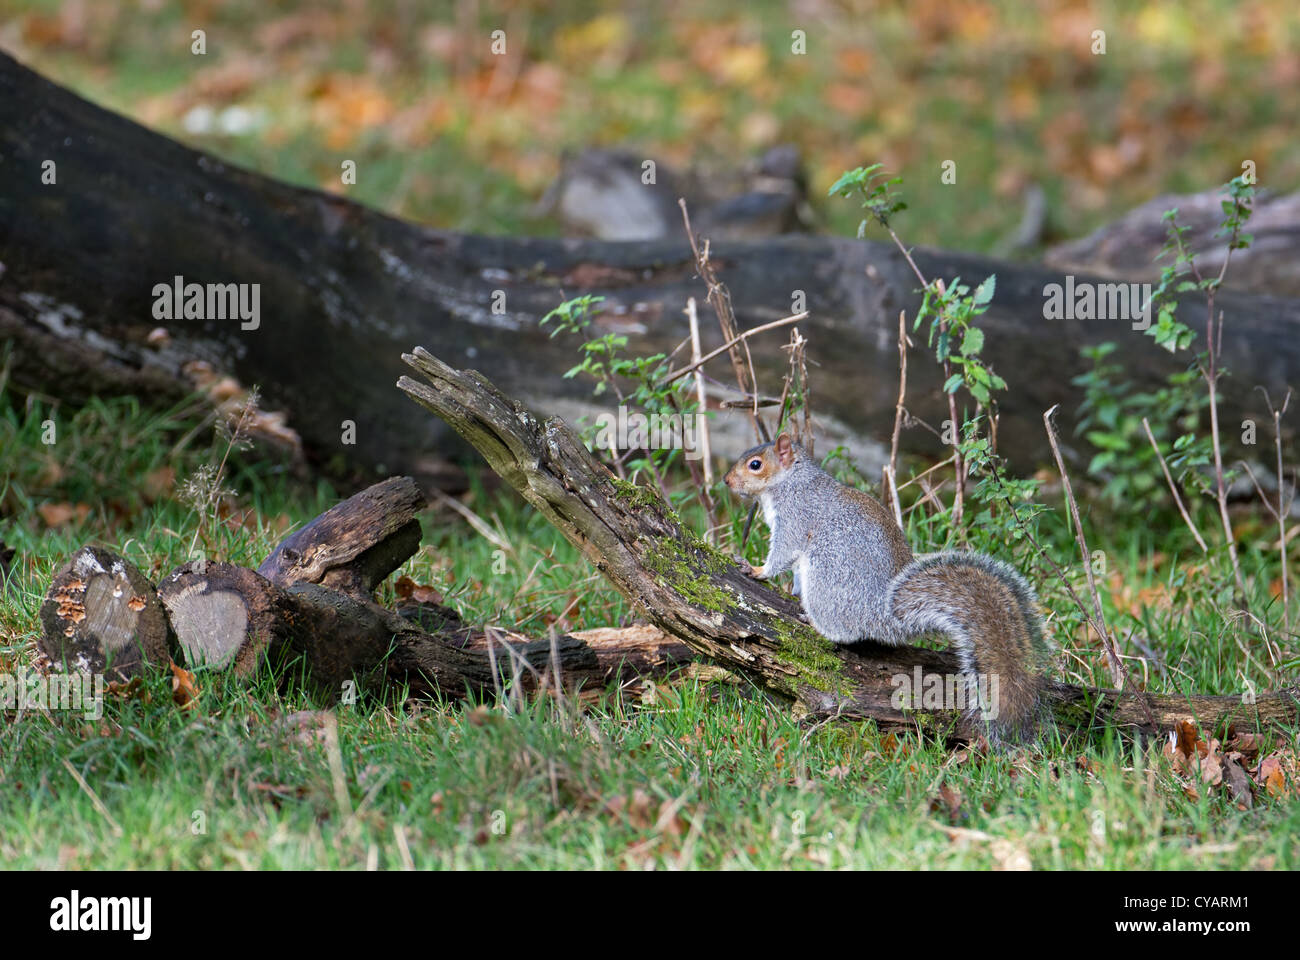 GREY SQUIRREL SCIURUS CAROLINENSIS PERCHED ON A LOG. UK - Stock Image